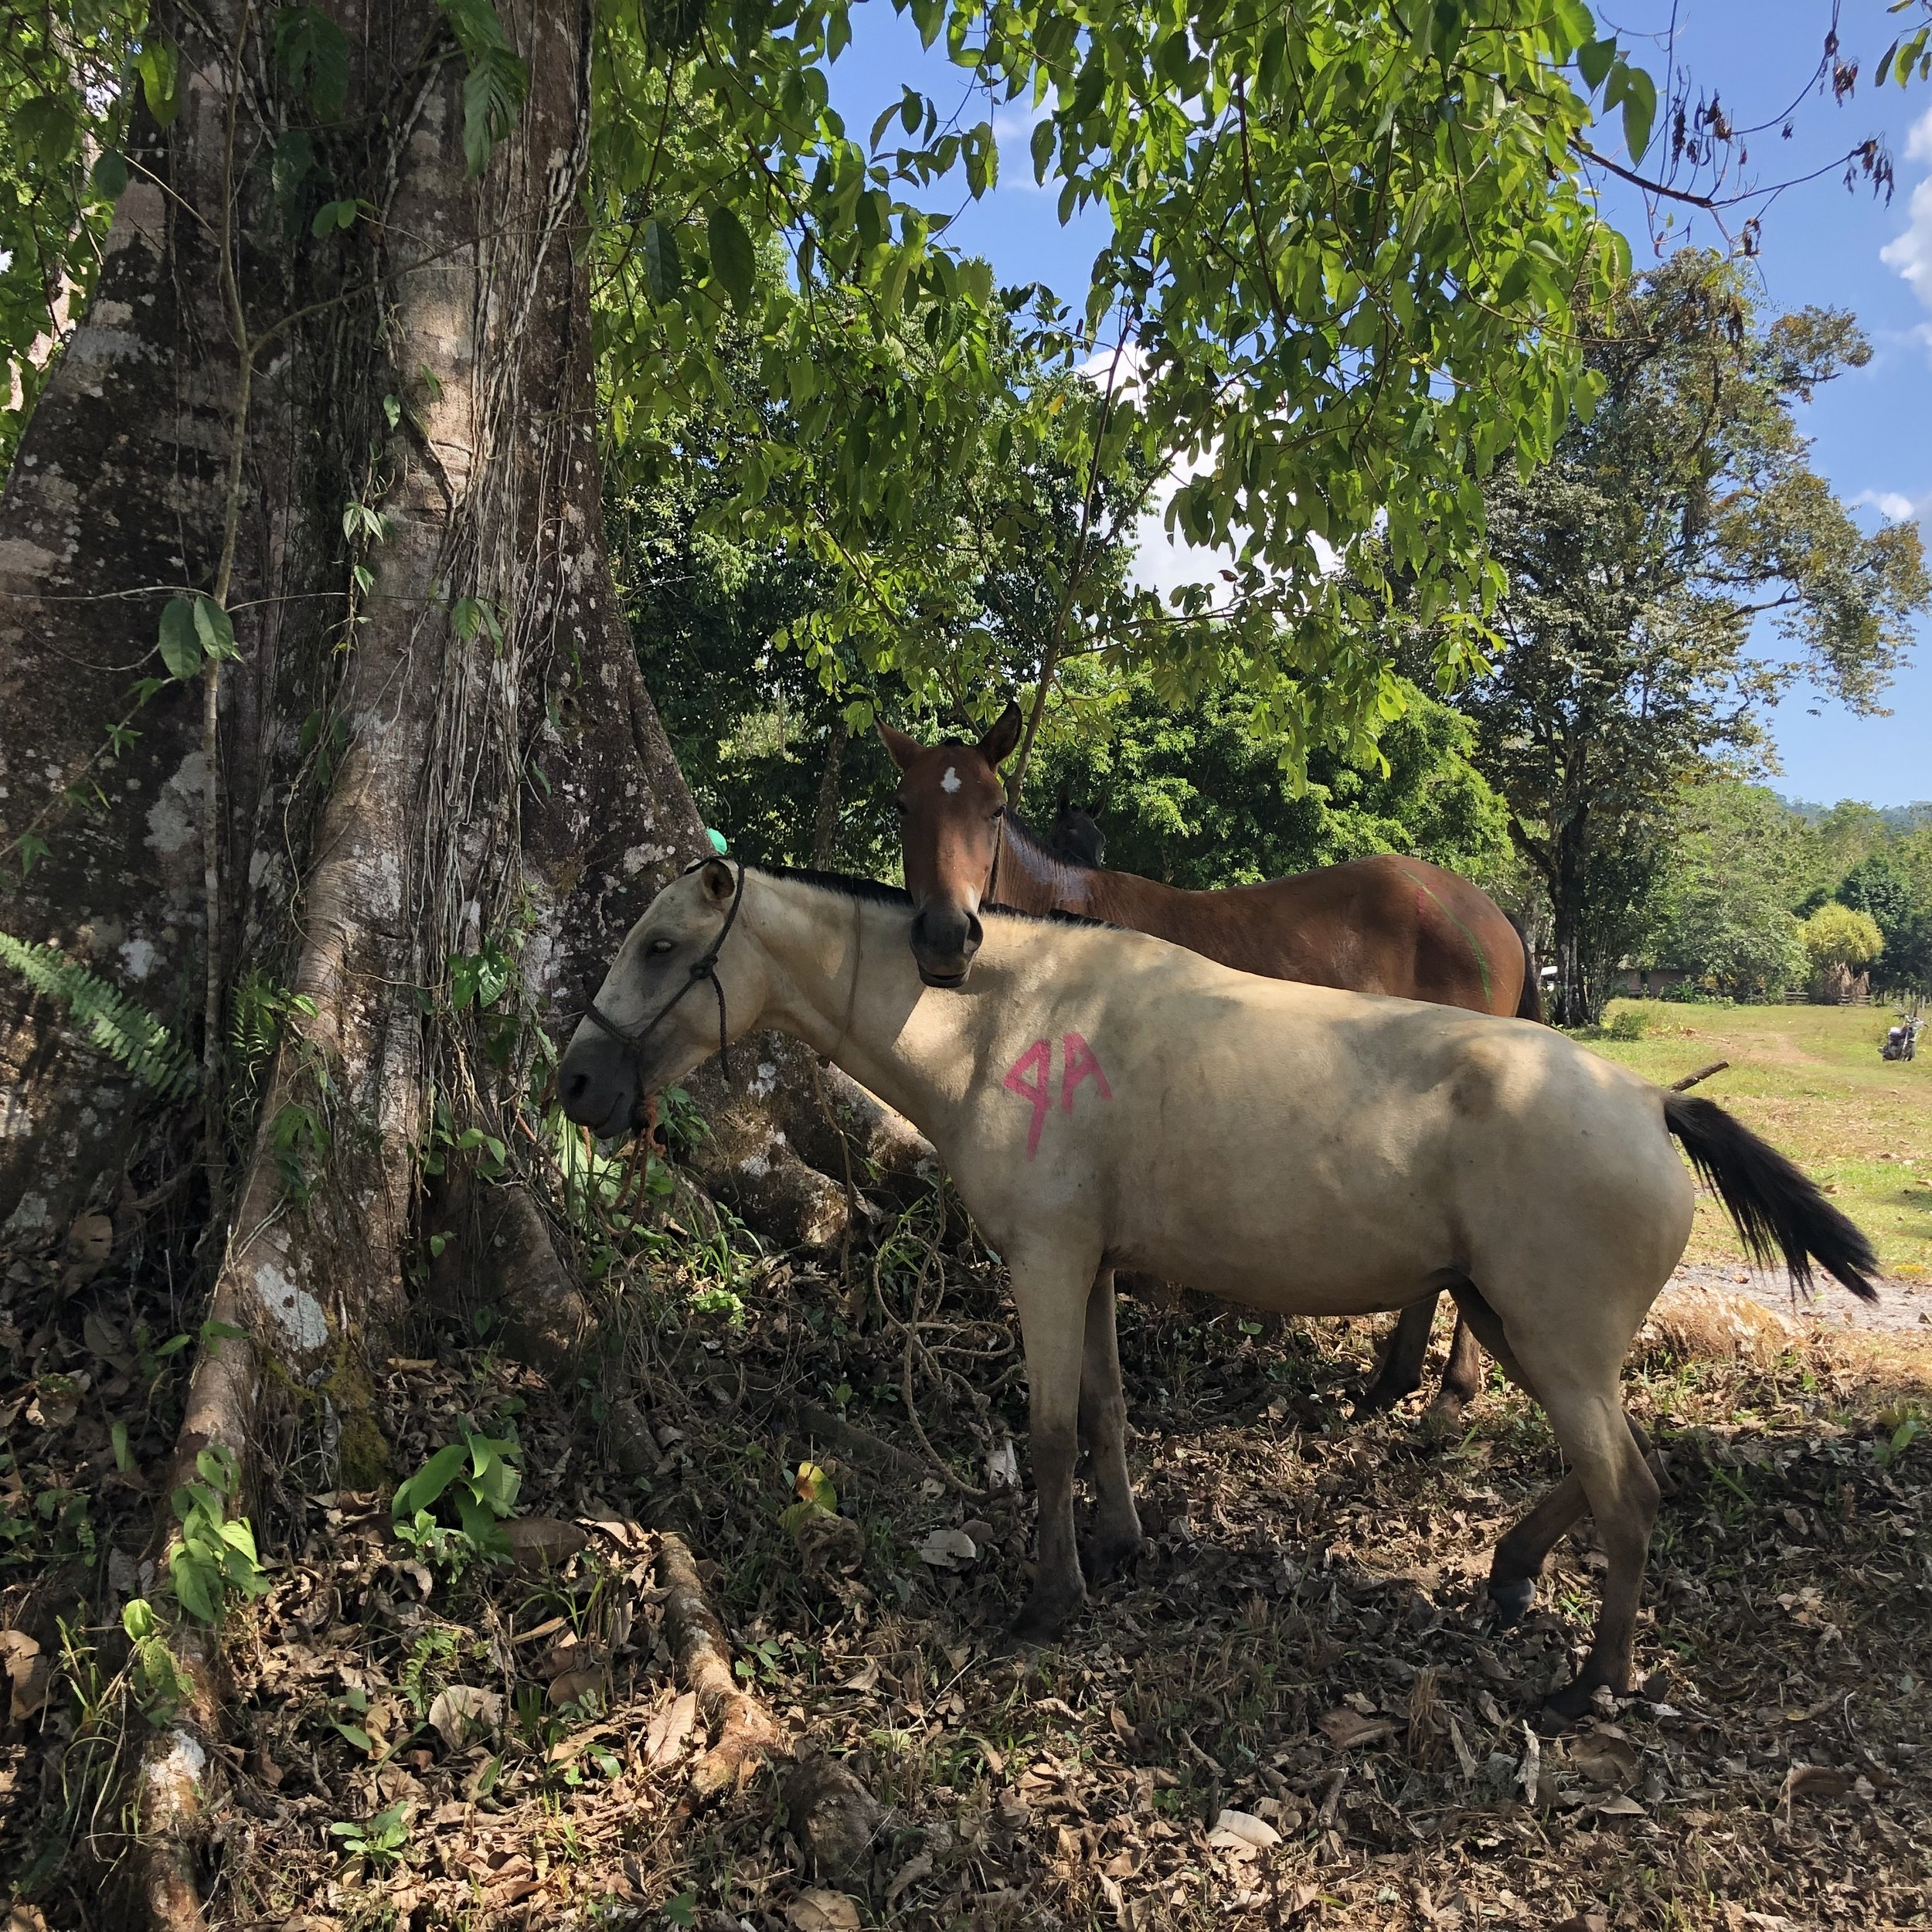 Though these horses rarely receive veterinary care, the majority of our patients were in excellent body condition. Owners typically rent lush pastures for their horses to graze.